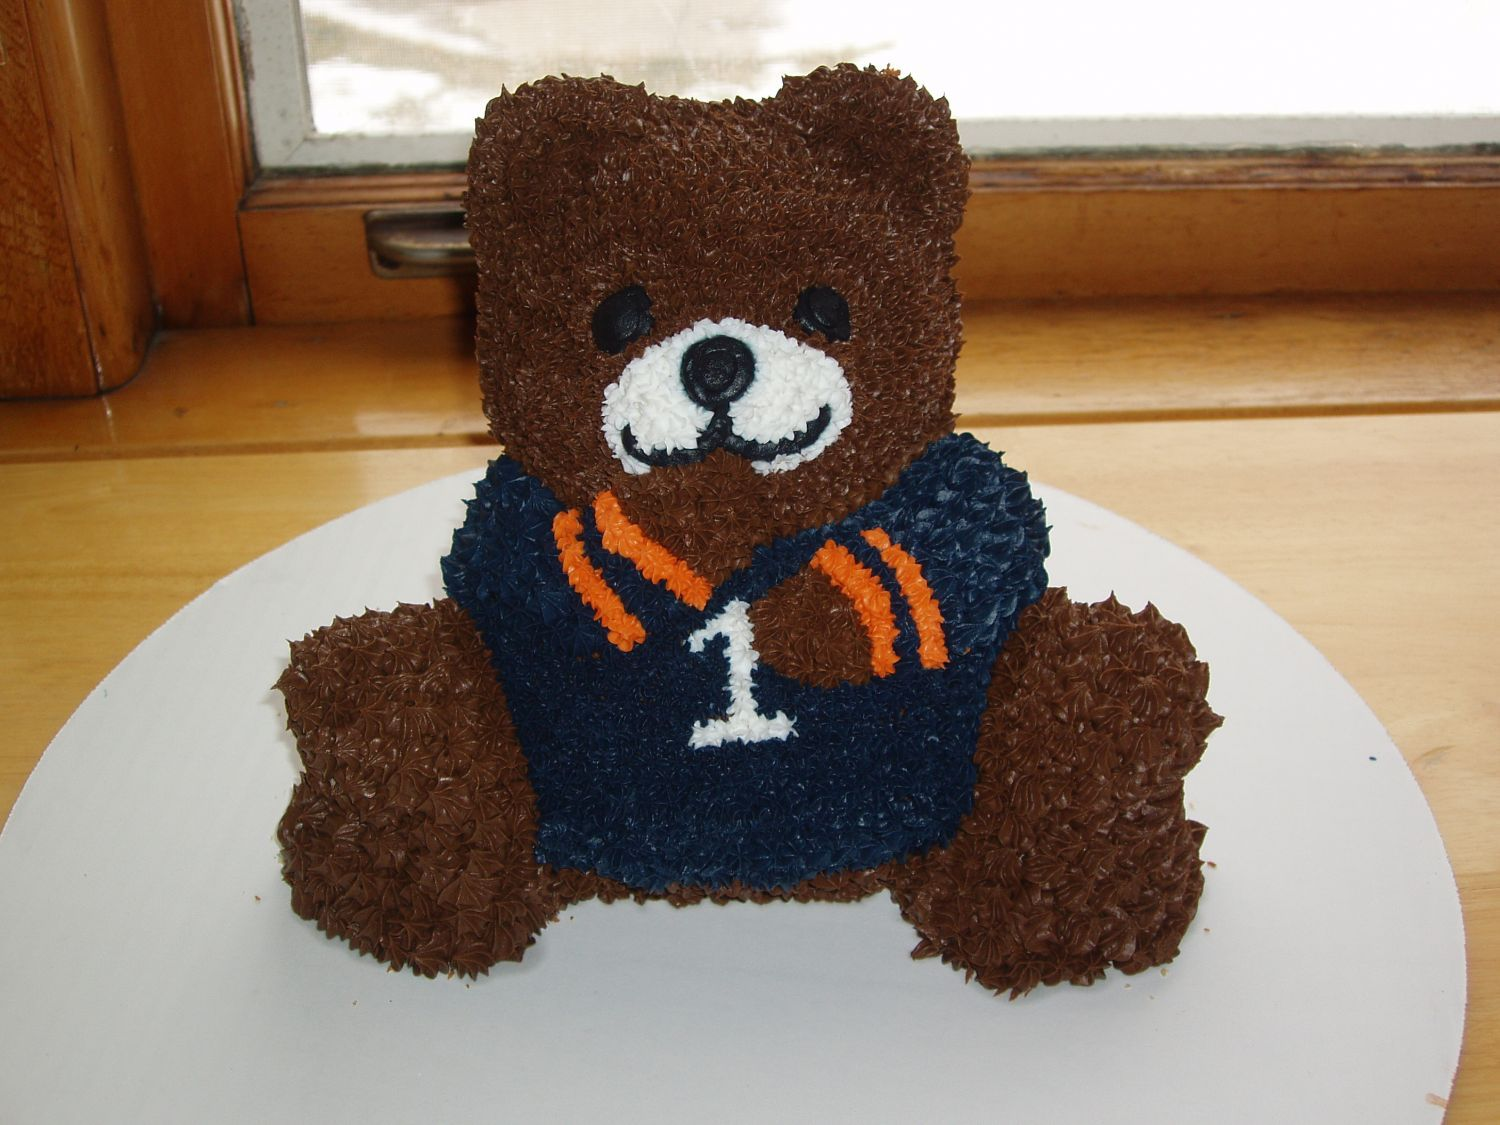 Le Meilleur 3D Chicago Bears Cake I Made This Cake For My Nephew S Ce Mois Ci